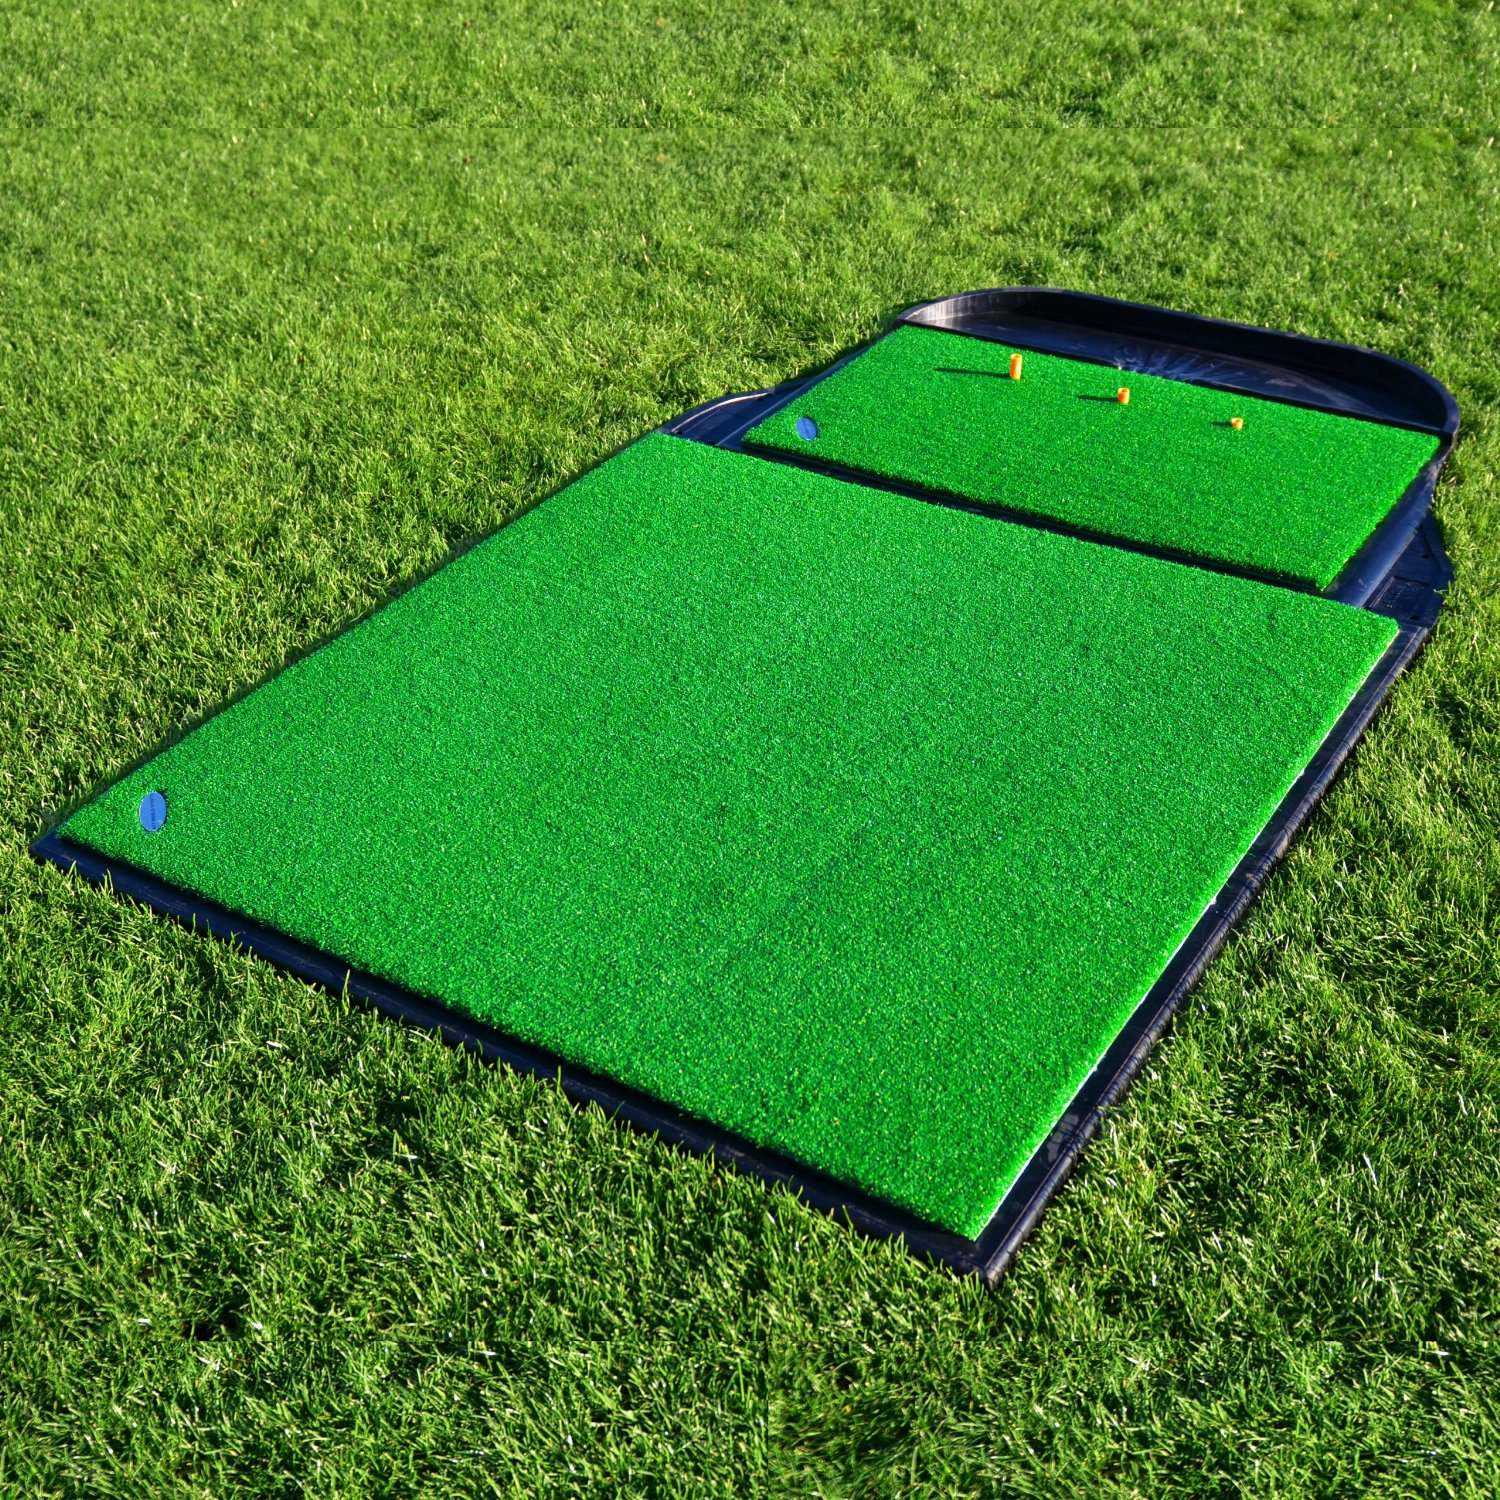 Net World Sports FORB Pro Driving Range Golf Practice Mats